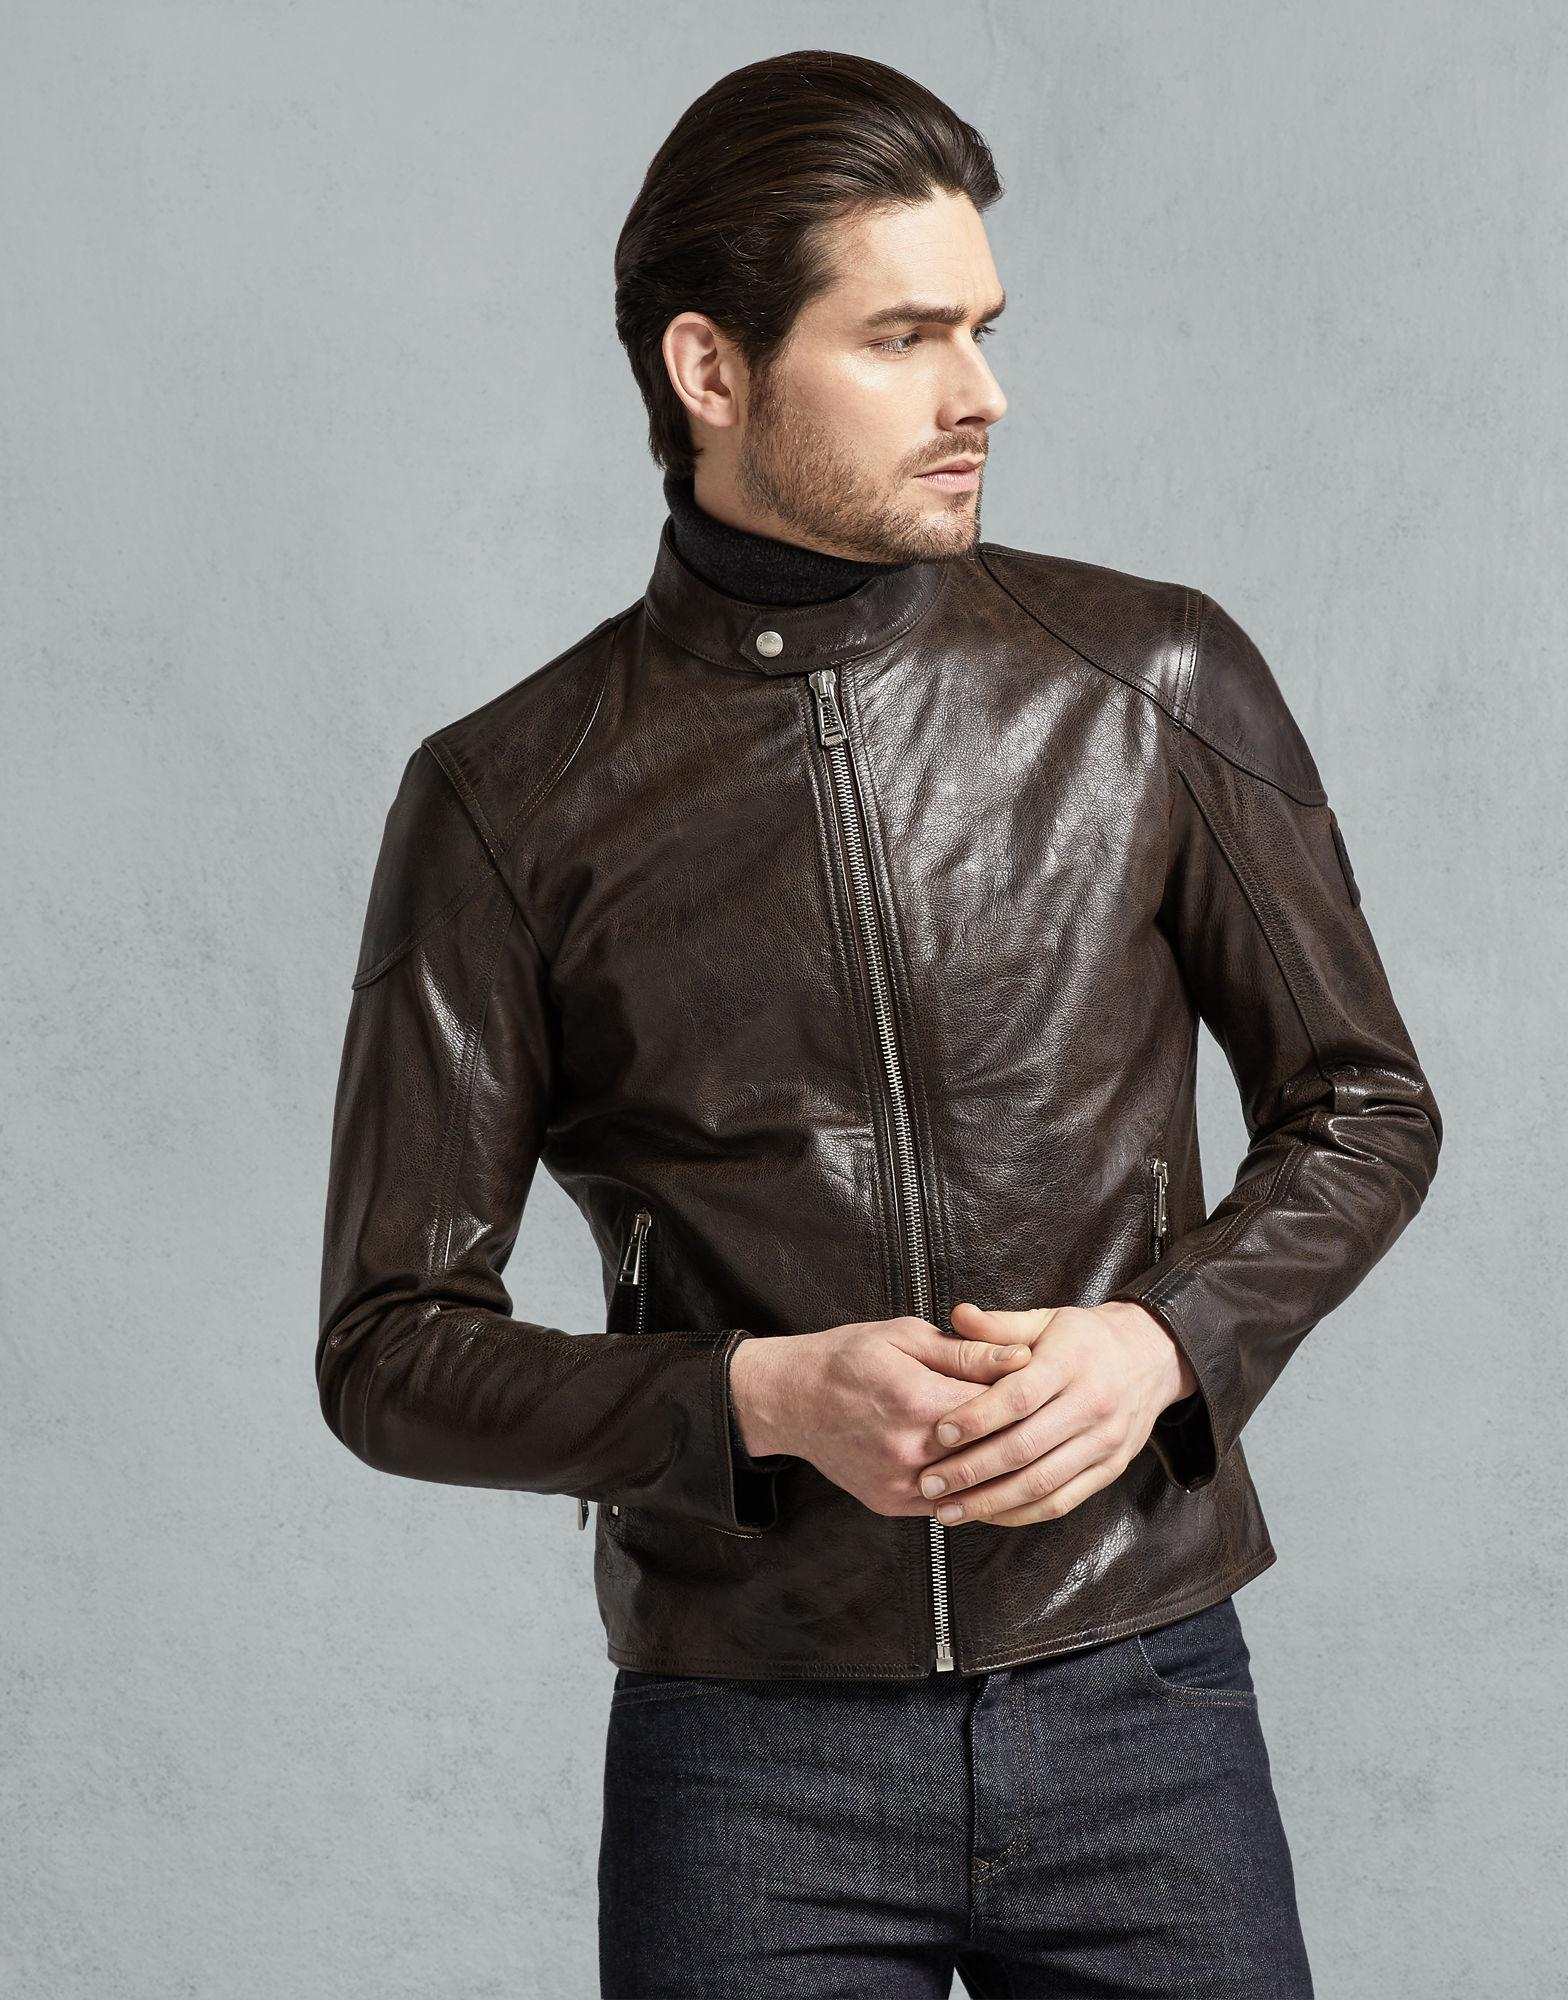 4edac7bbd04 Belstaff - Multicolor Bandit Café Racer Jacket for Men - Lyst. View  fullscreen